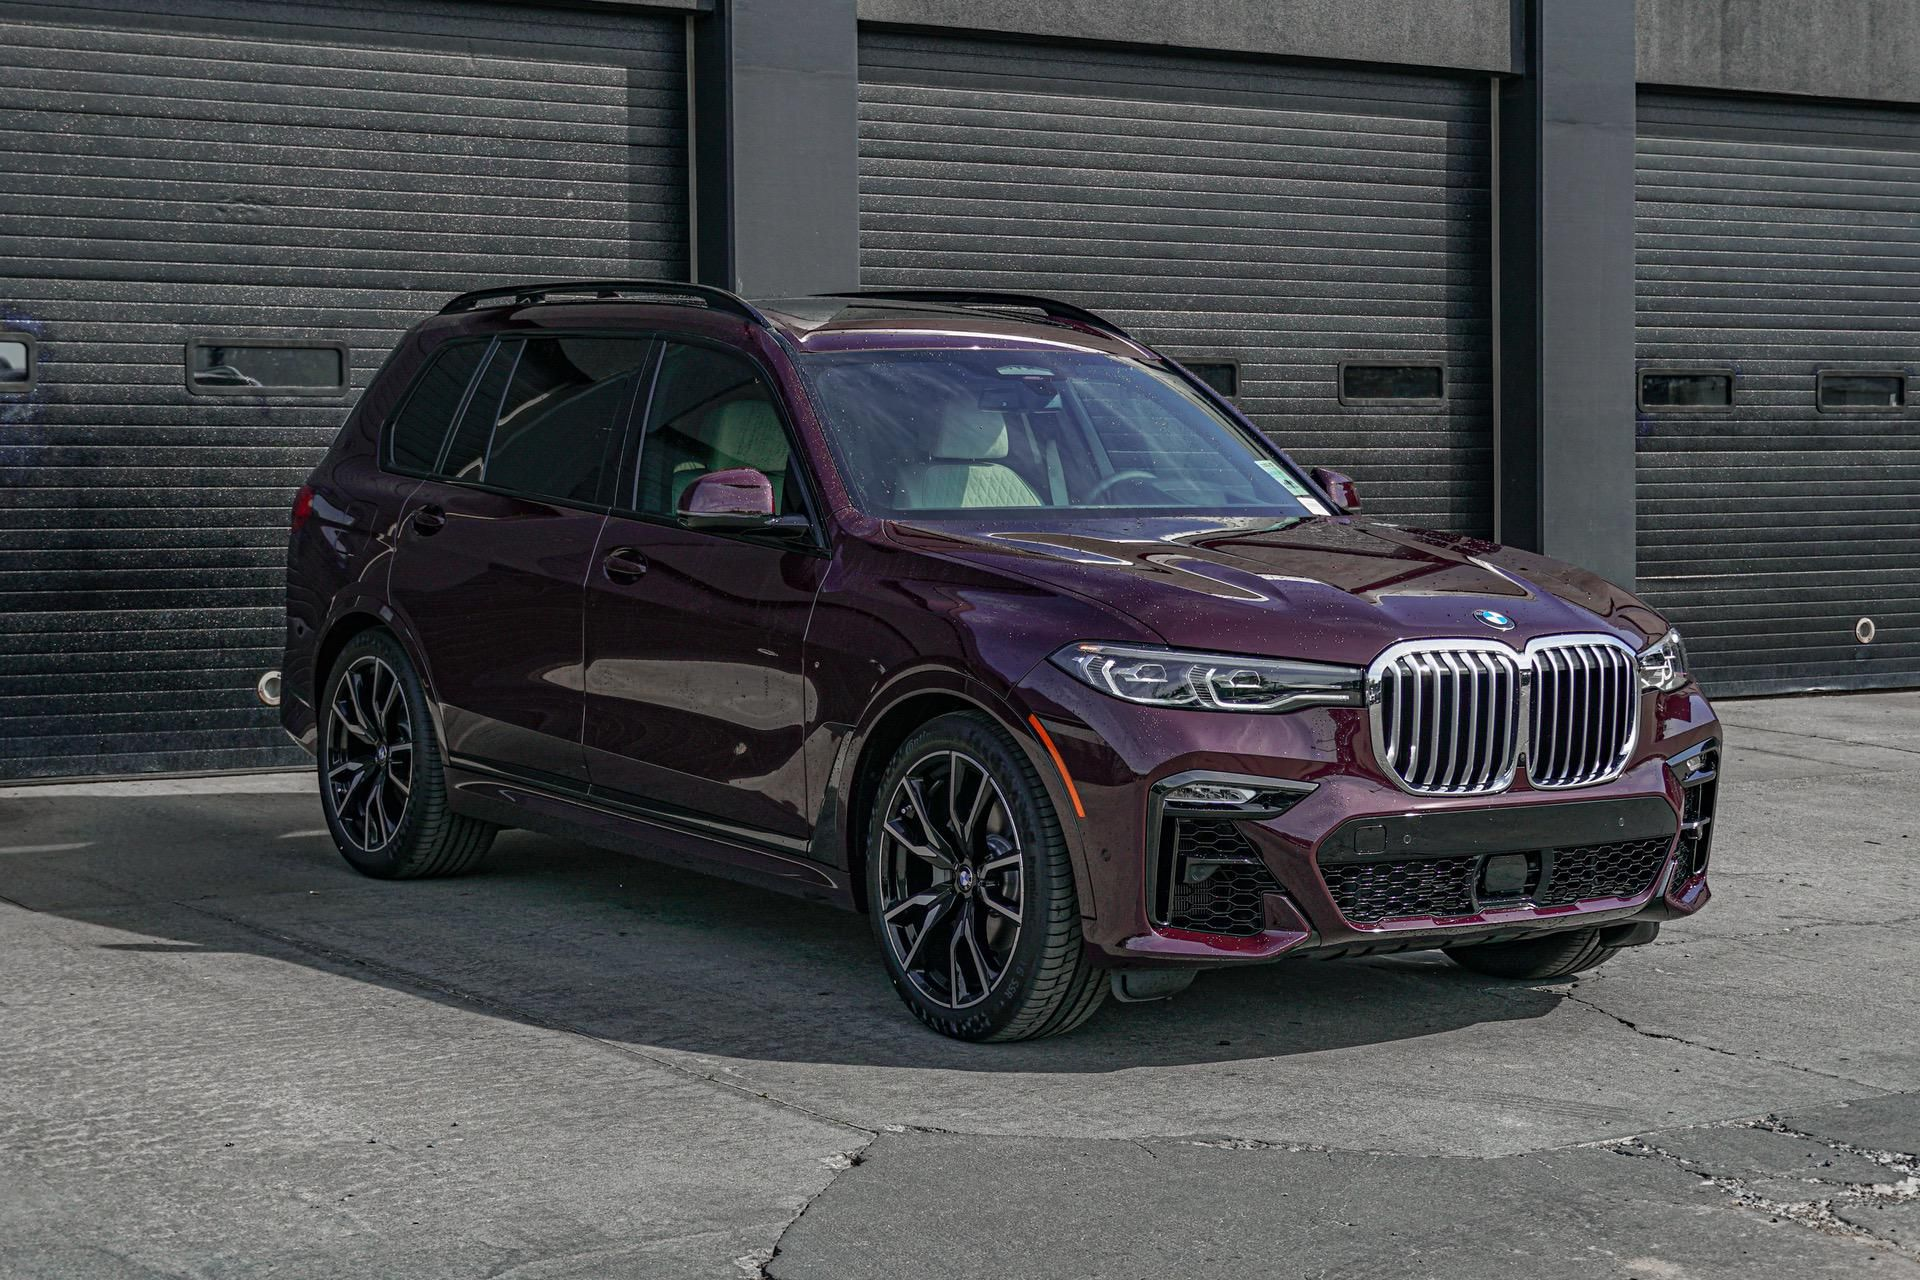 Bmw X7 In Ametrin Metallic Shows Up At U S Dealerships In 2020 Bmw X7 Bmw Car